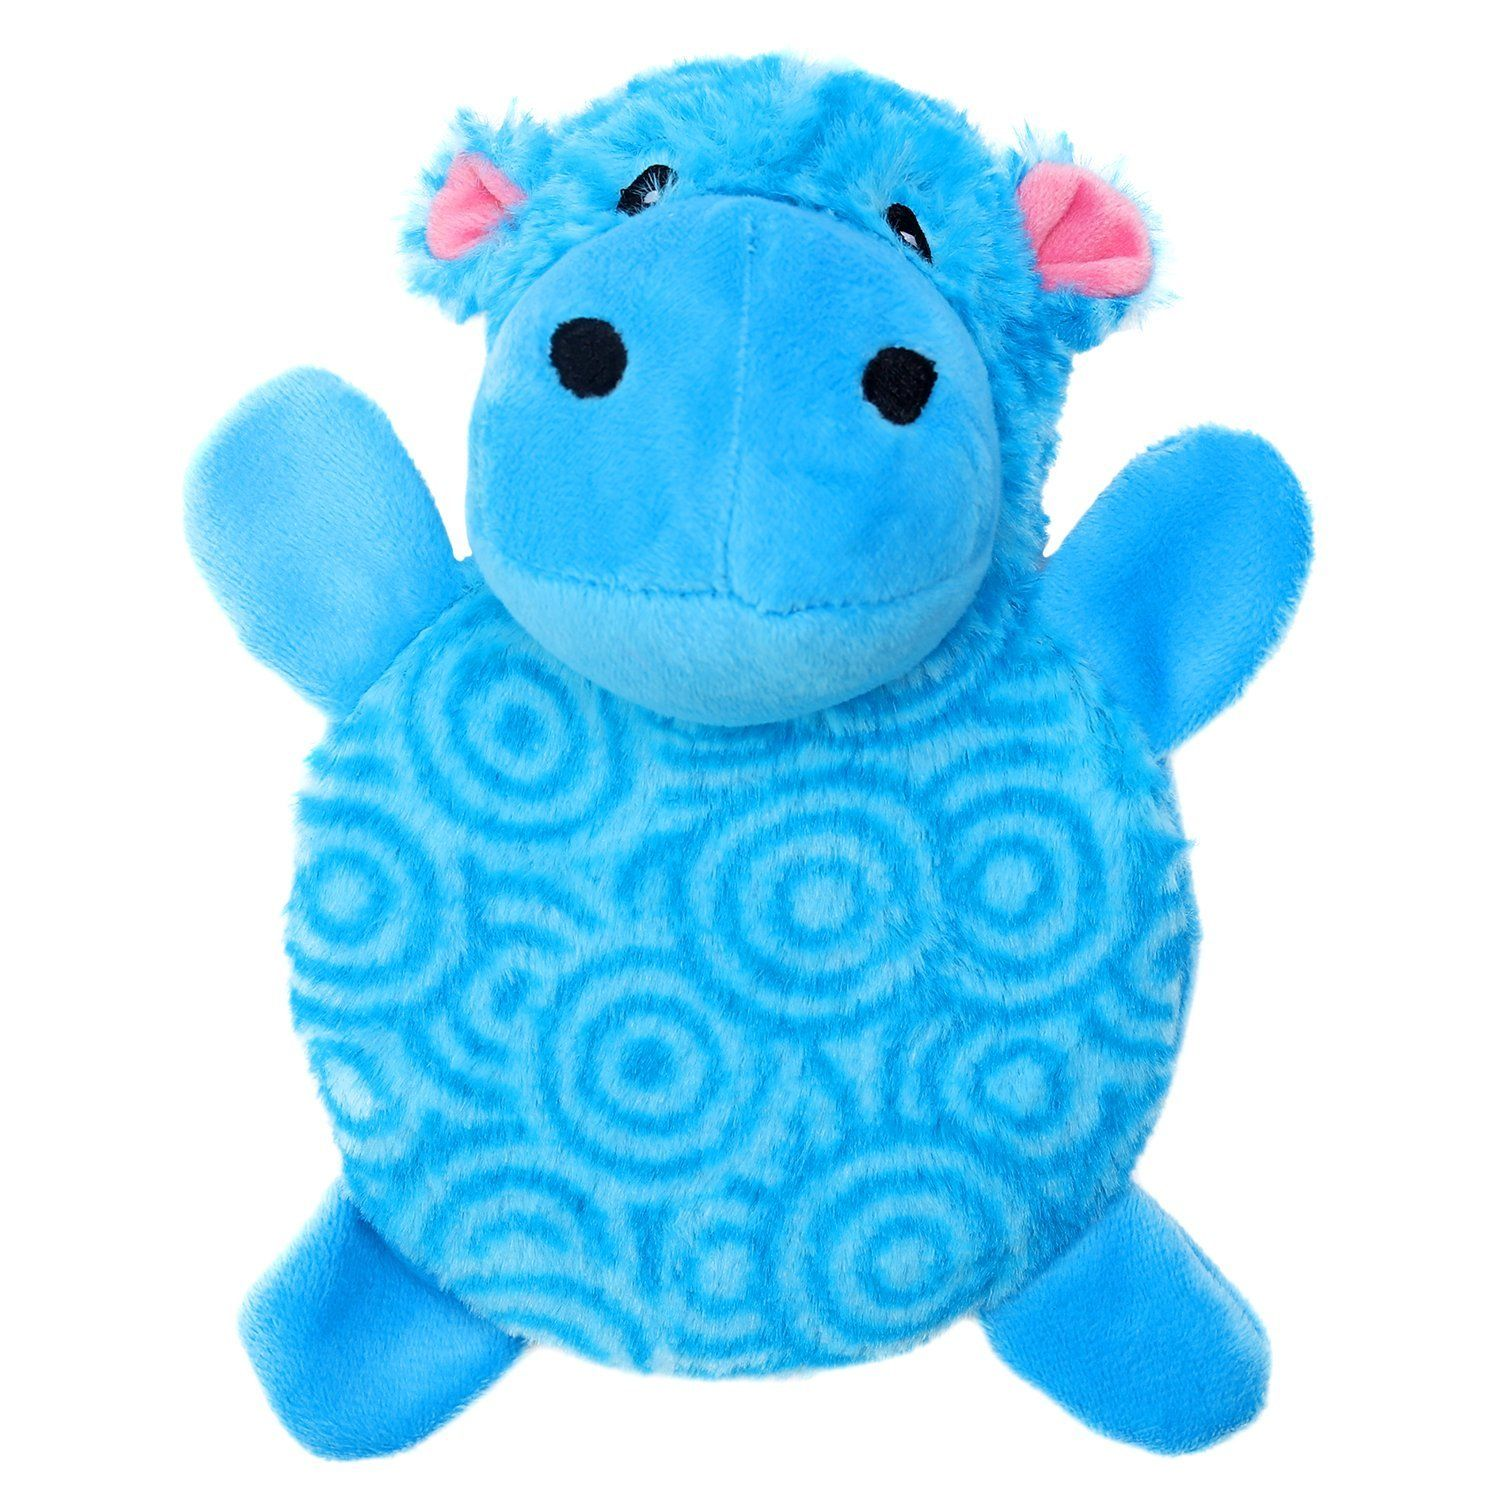 Vvwee Dog Plush Squeaky Toy Dog Stuffed Animals Chew Toy With Big Squeaker Disc Inside Full Body Dog Plush Toy For C Dog Stuffed Animal Squeaky Toys Dog Toys [ 1500 x 1500 Pixel ]